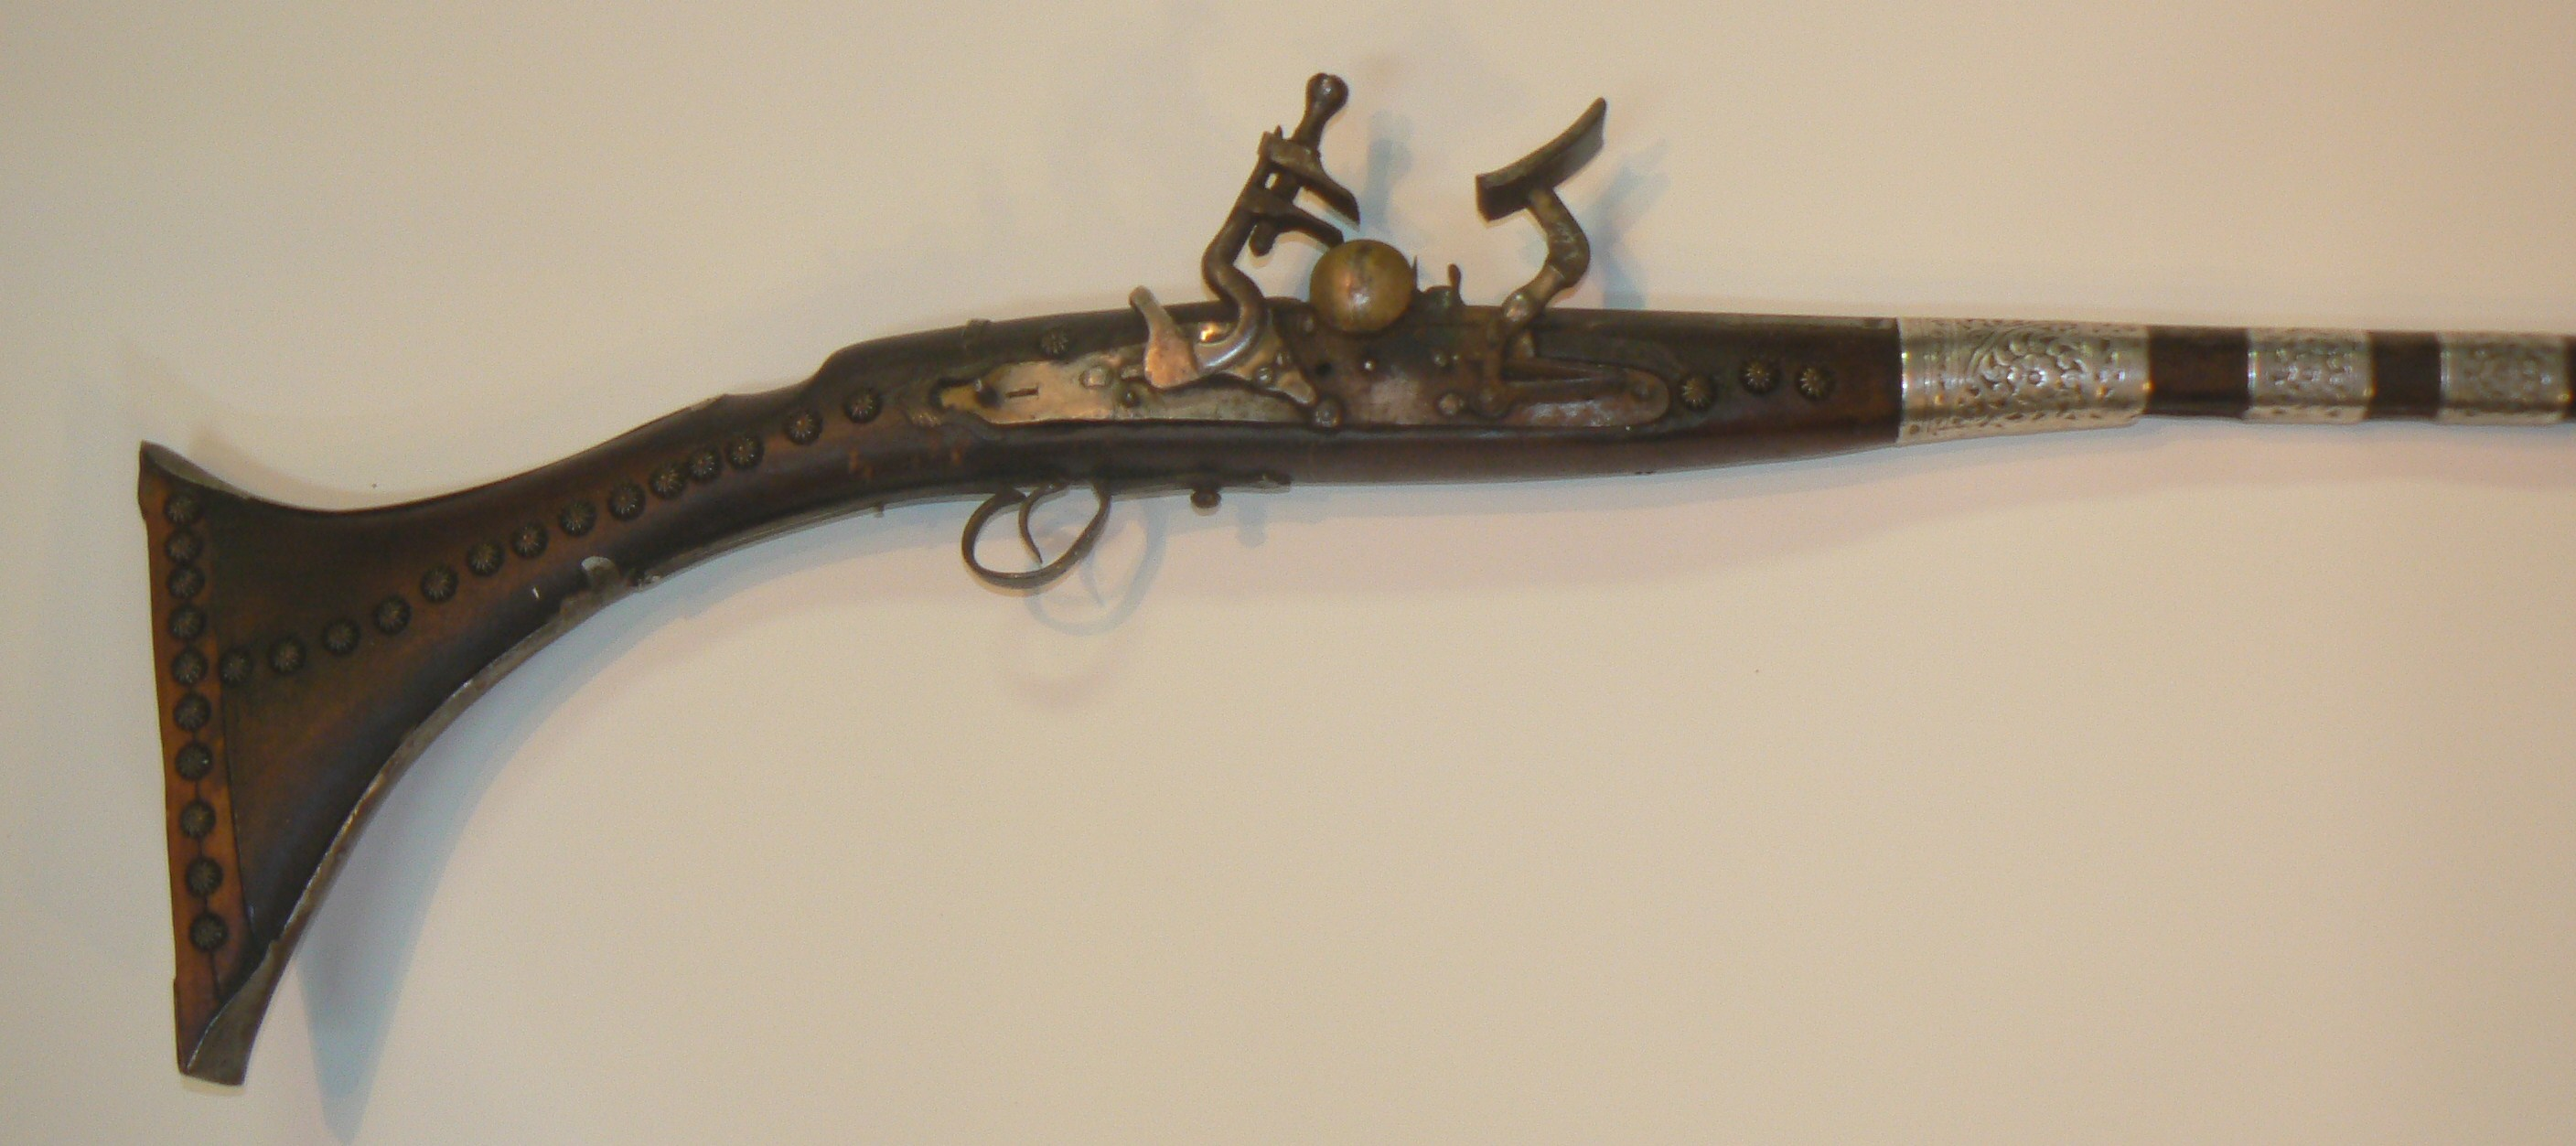 North African Snaphaunce Musket Hat City Pawn